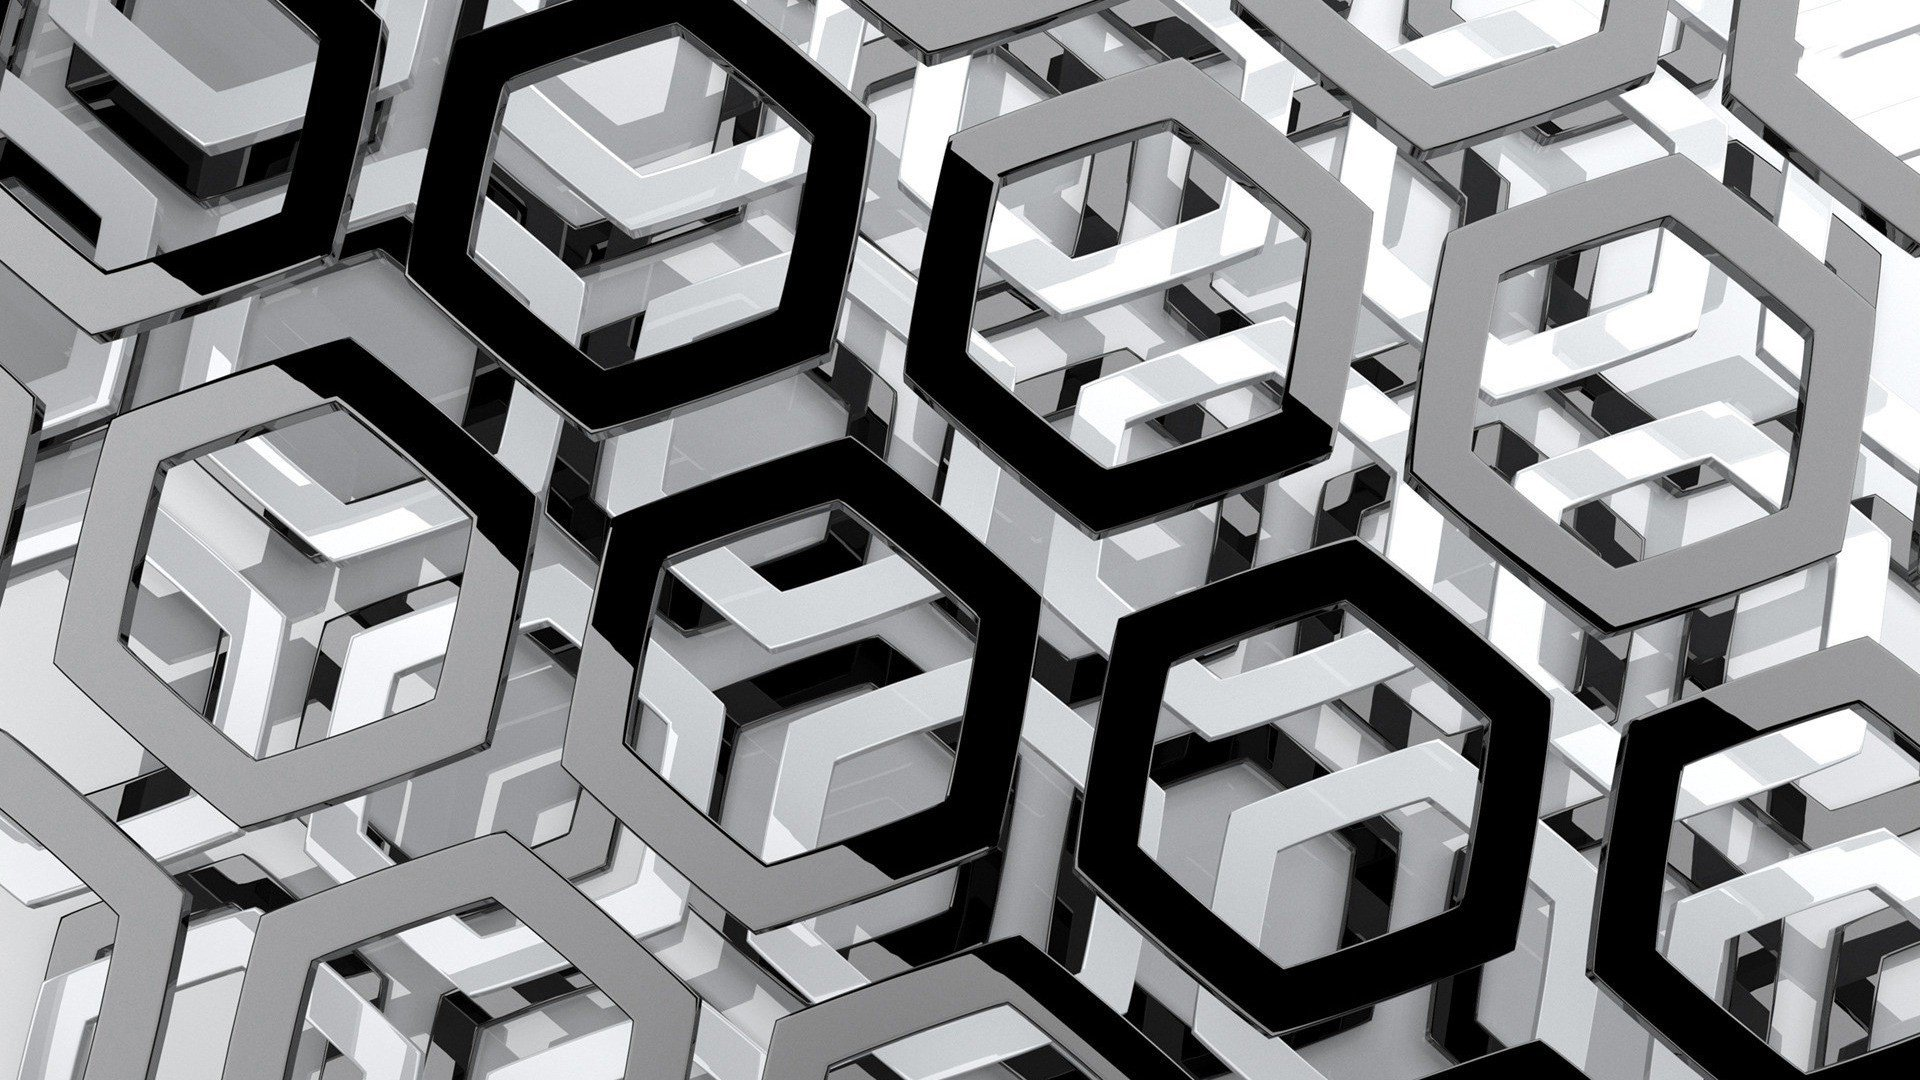 Abstract-black-and-white-hexagons-monochrome-1920x1080-UP-wallpaper-wpc9001999